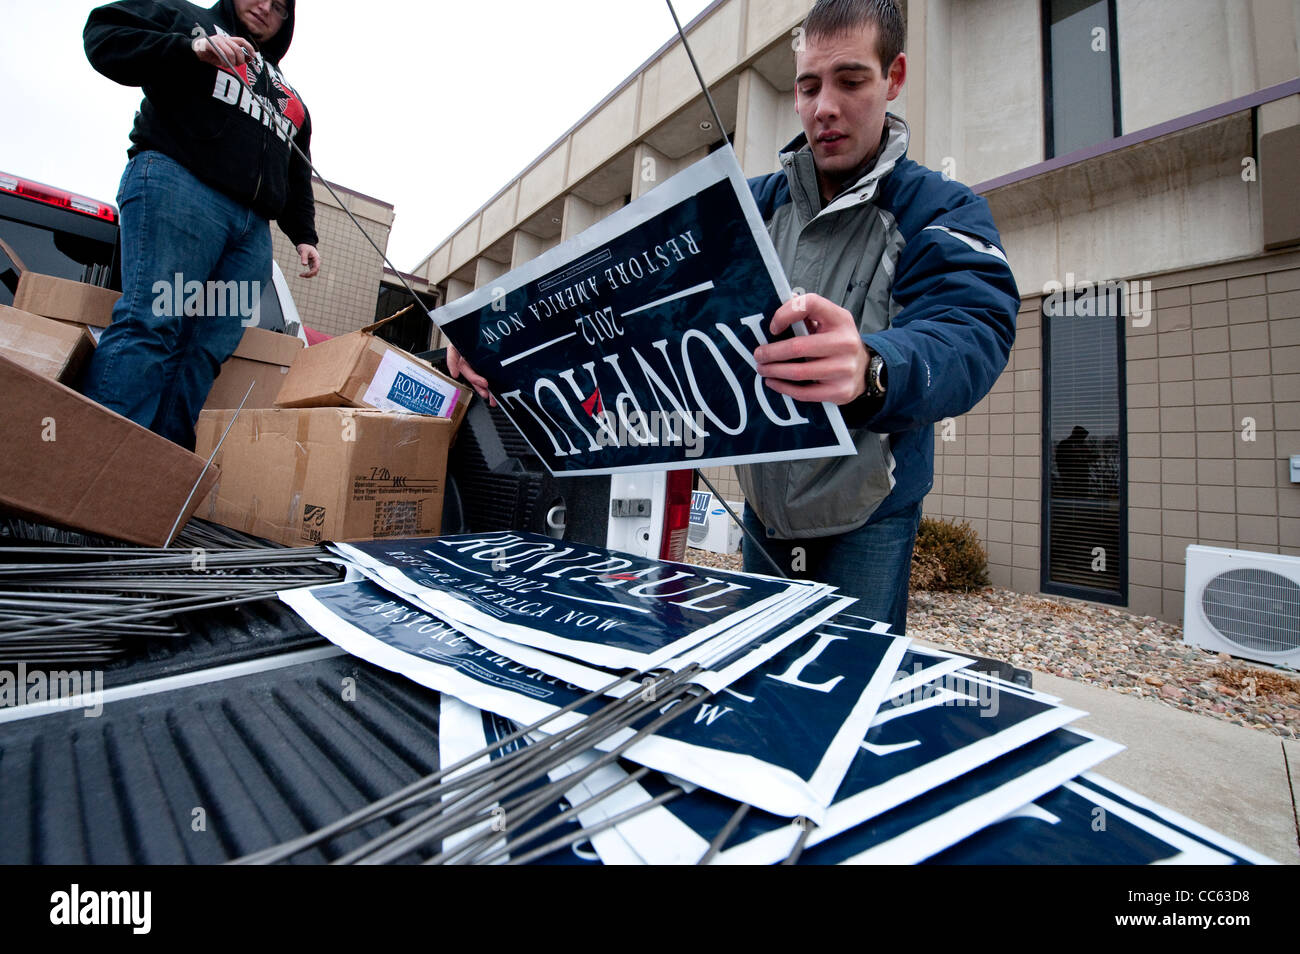 Supporter of Republican presidential candidate Ron Paul puts together signs at a campaign rally in Le Mars Iowa - Stock Image